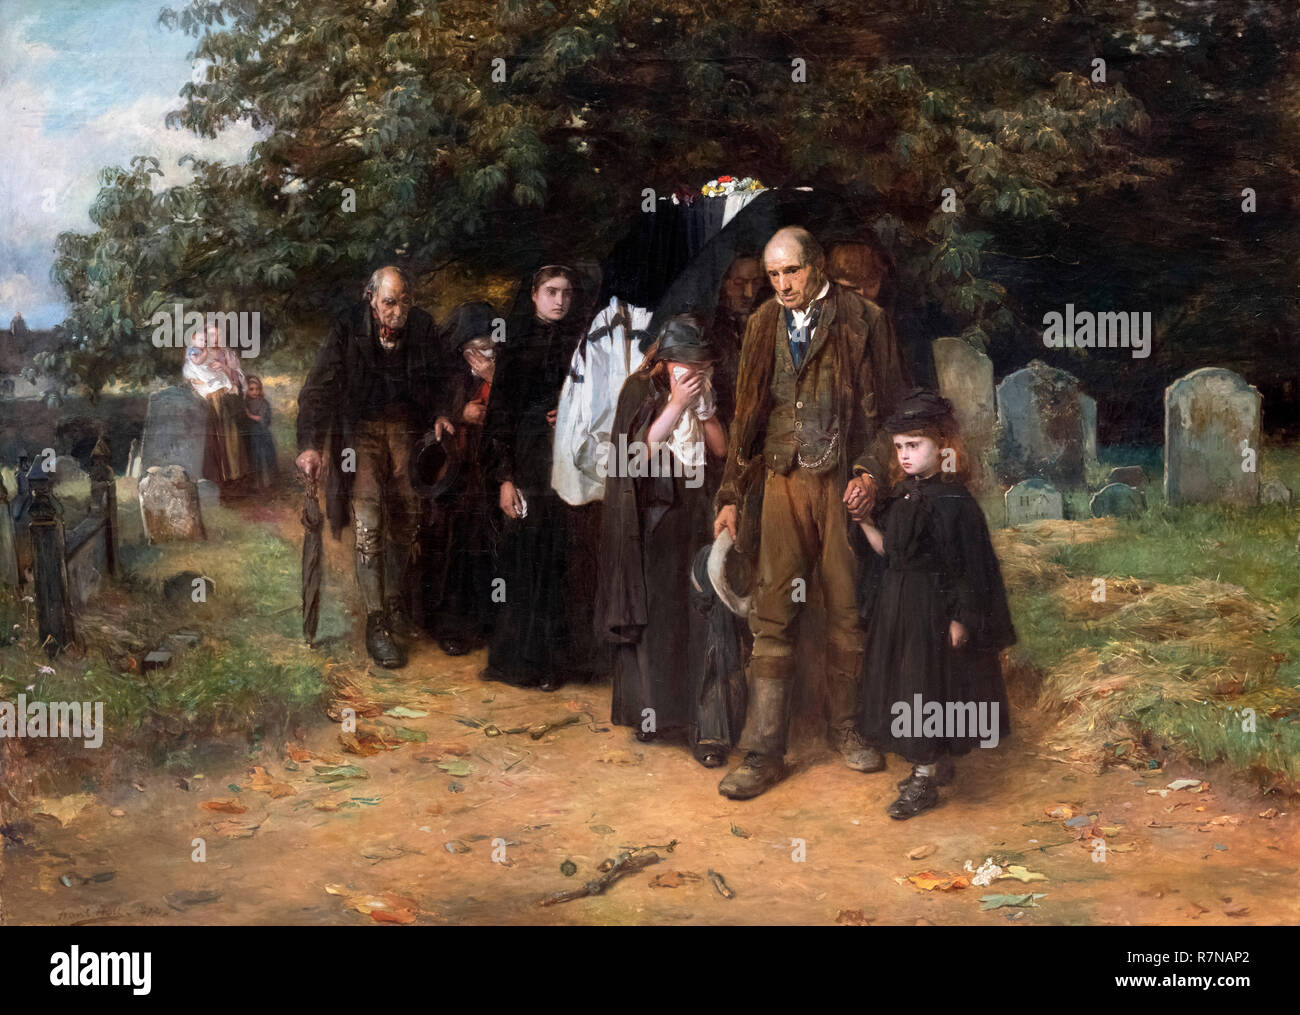 'I am the Resurrection and the Life' or 'A Village Funeral' by Frank Holl (Francis Montague Holl - 1845-1888), oil on canvas, 1872 - Stock Image